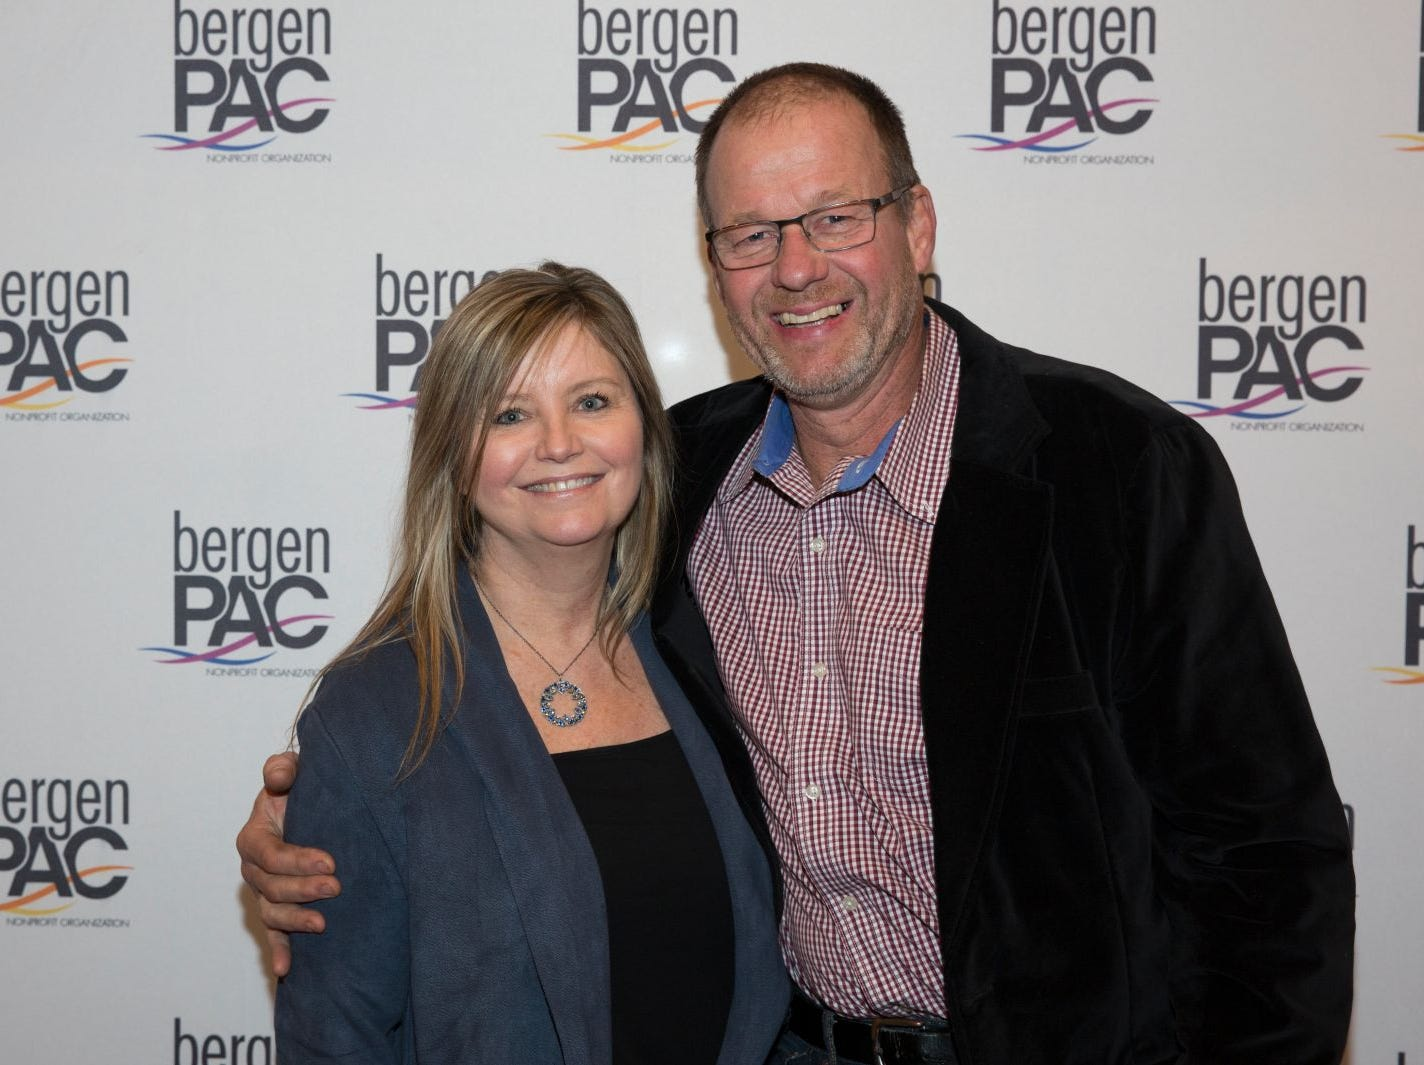 Dawne and Terry Beltramini. BergenPAC held its annual fall gala featuring John Fogerty in Englewood. This year's honoree was Fernando Garip, from Wilmington Trust and M&T Bank. 11/08/2018